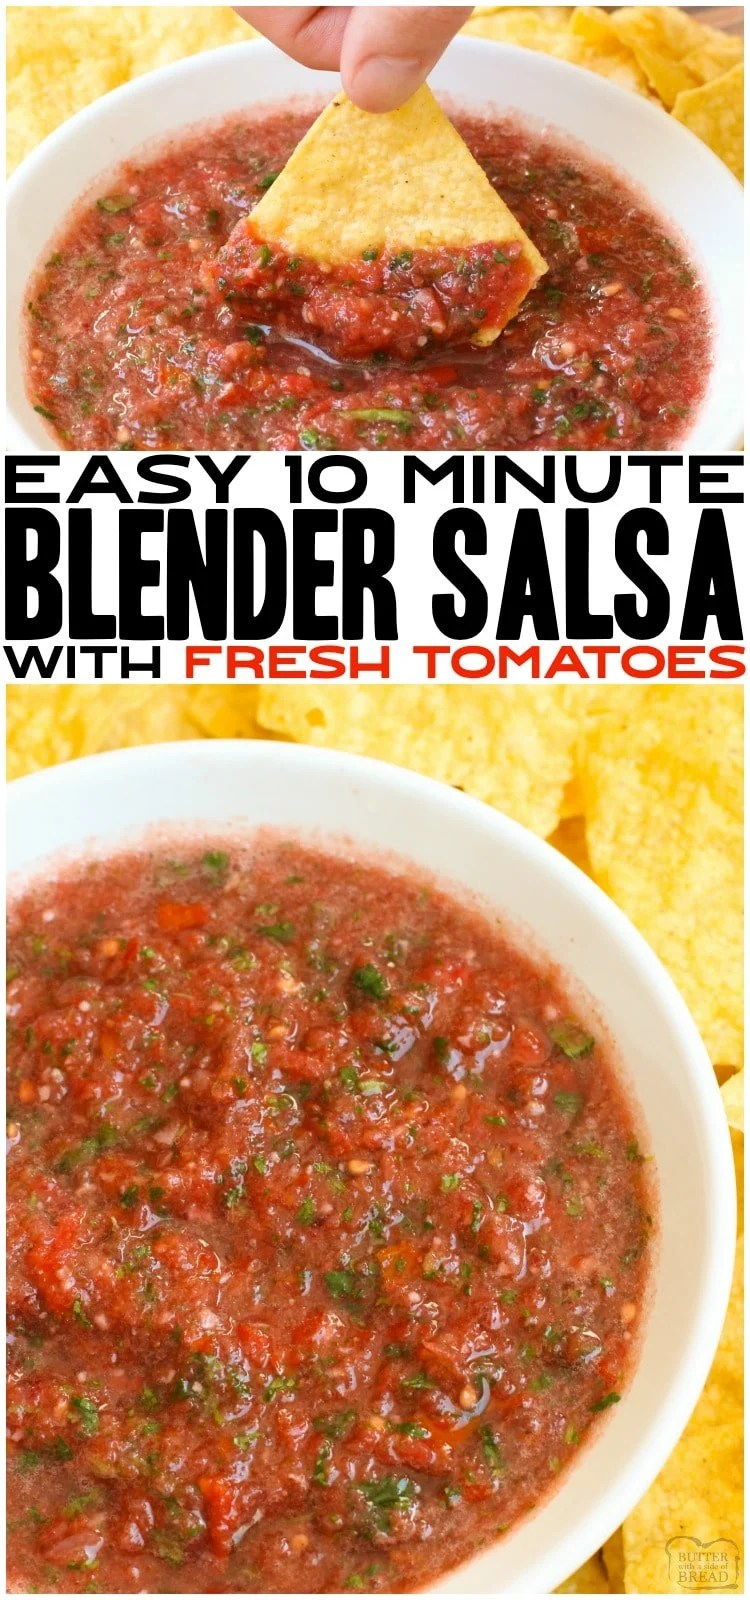 Fresh Blender Salsa made with tomatoes, cilantro, onion and lime juice made super fast in a blender! Better than restaurant homemade salsa recipe with amazing fresh flavor everyone loves.